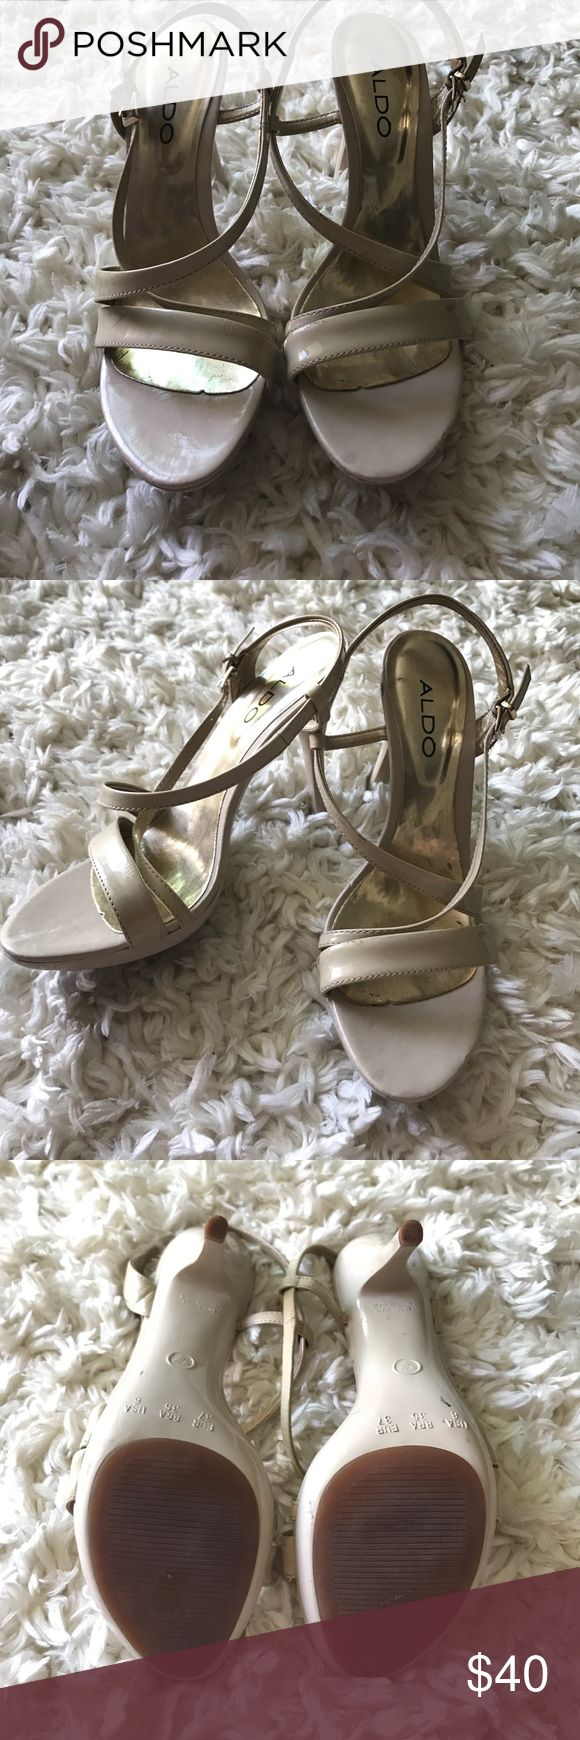 ALDO NUDE STRAPPY HEELS, great for dresses/jeans ALDO NUDE STRAPPY HEELS, great for dresses/jeans, size 6 Aldo Shoes Heels